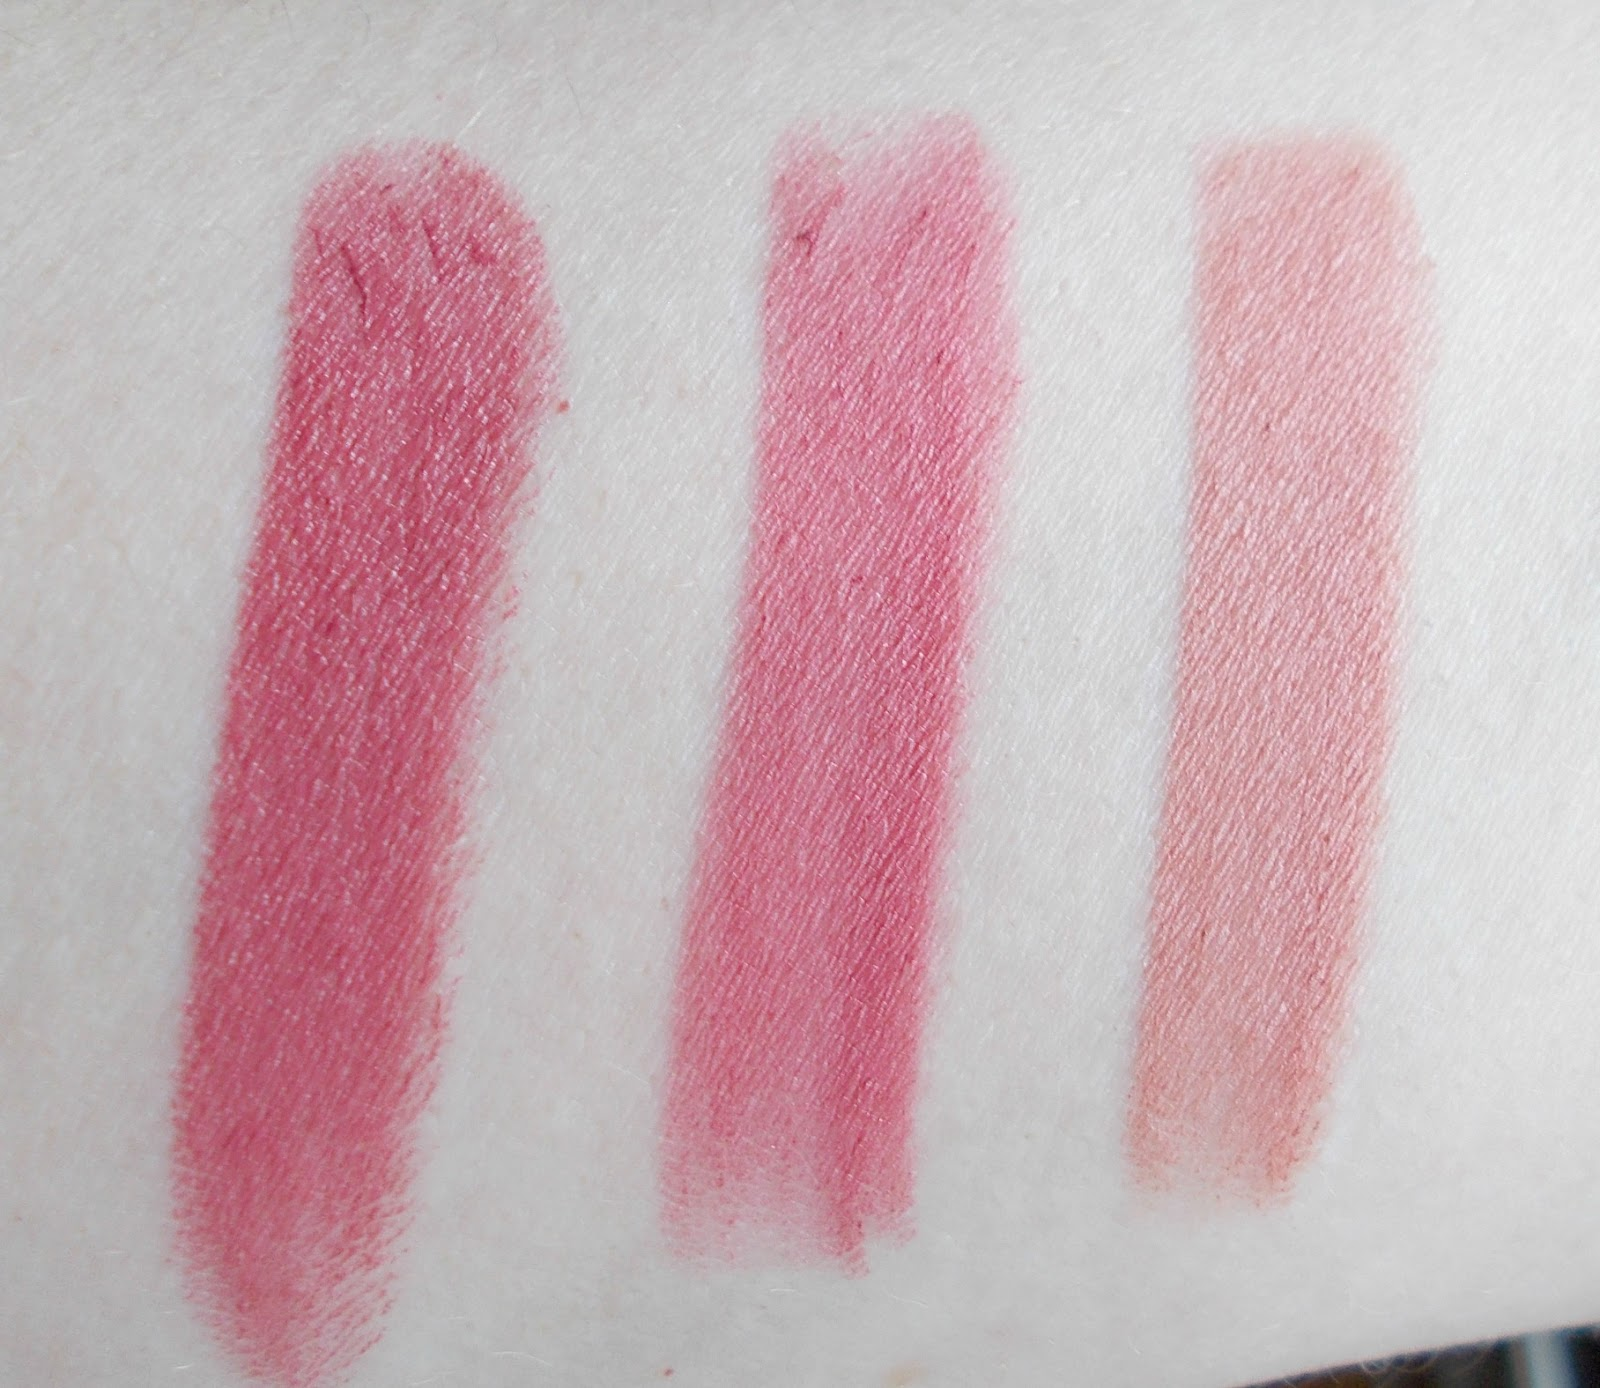 smashbox my digits charlotte tilbury secret salma pillowtalk swatches